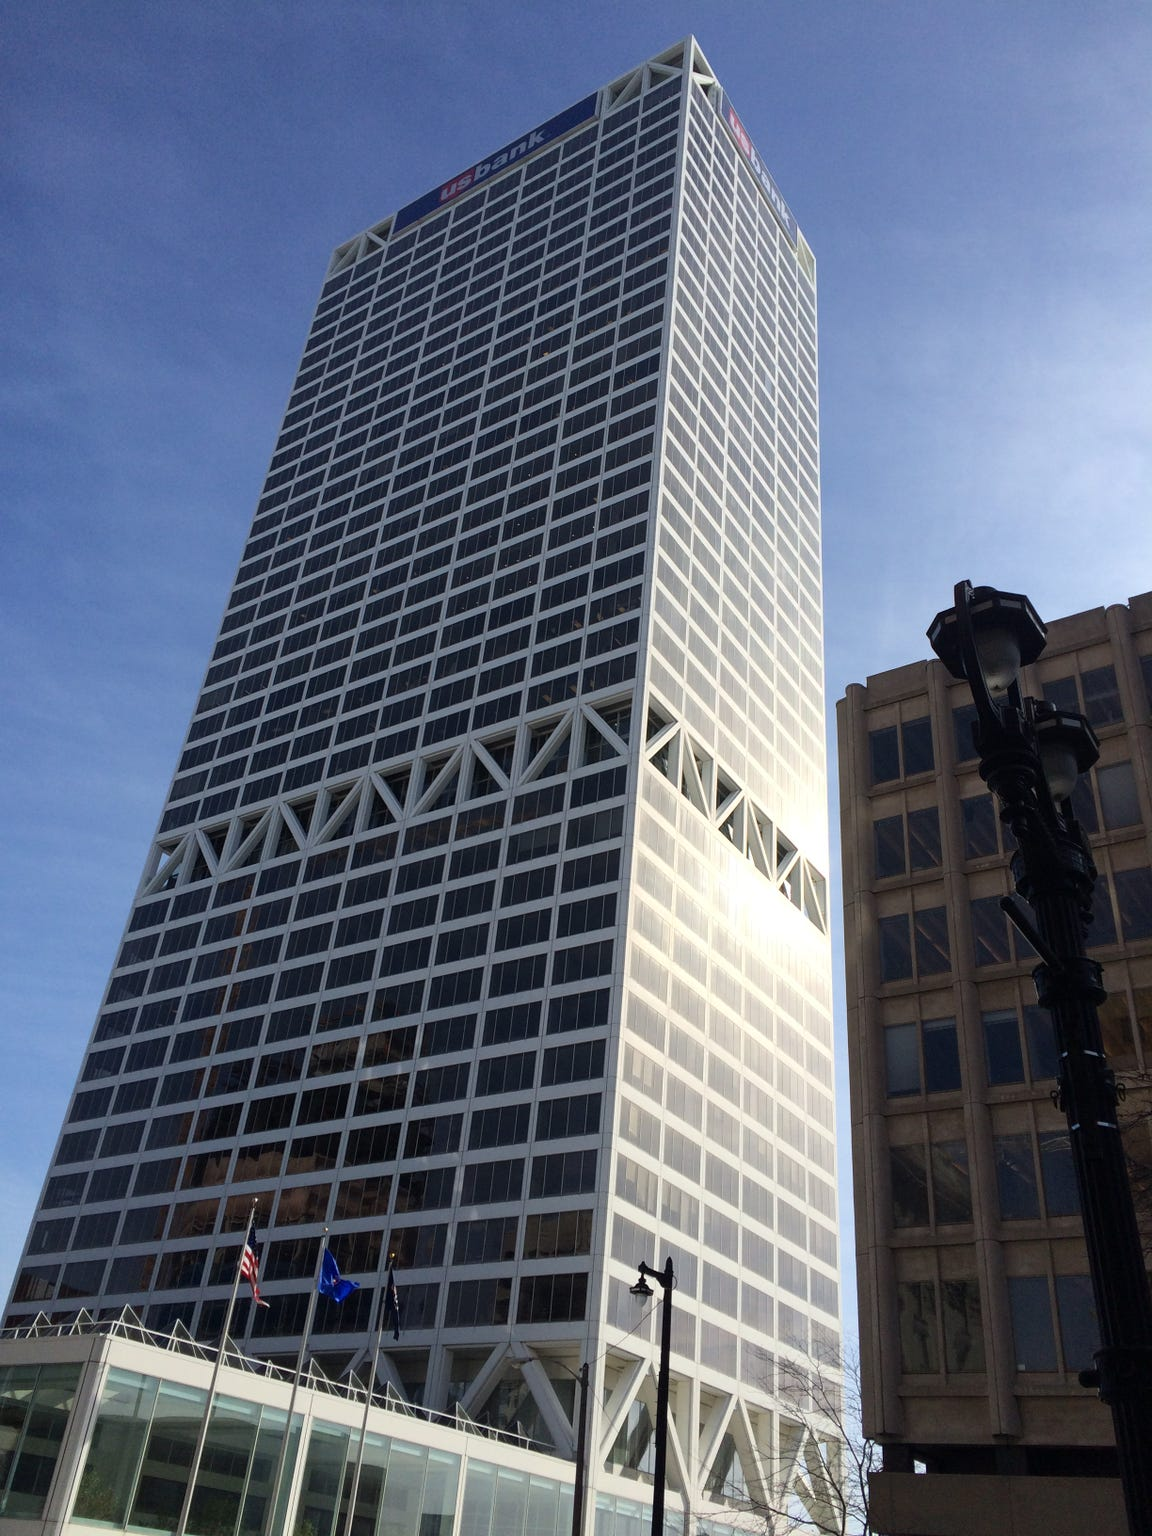 The U.S. Bank building is a familiar staple in the Milwaukee skyline.